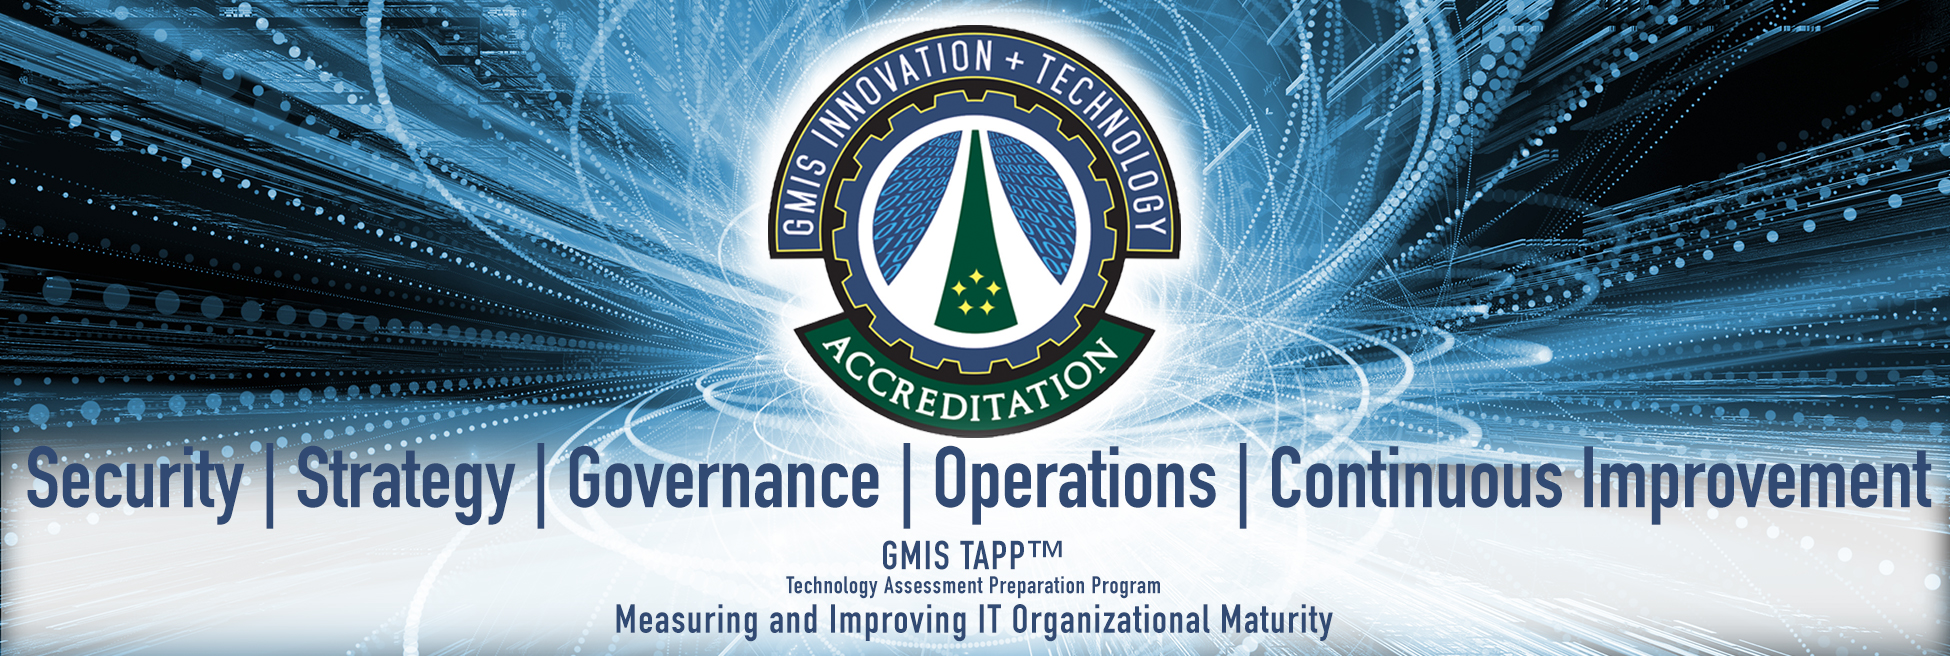 accreditation program